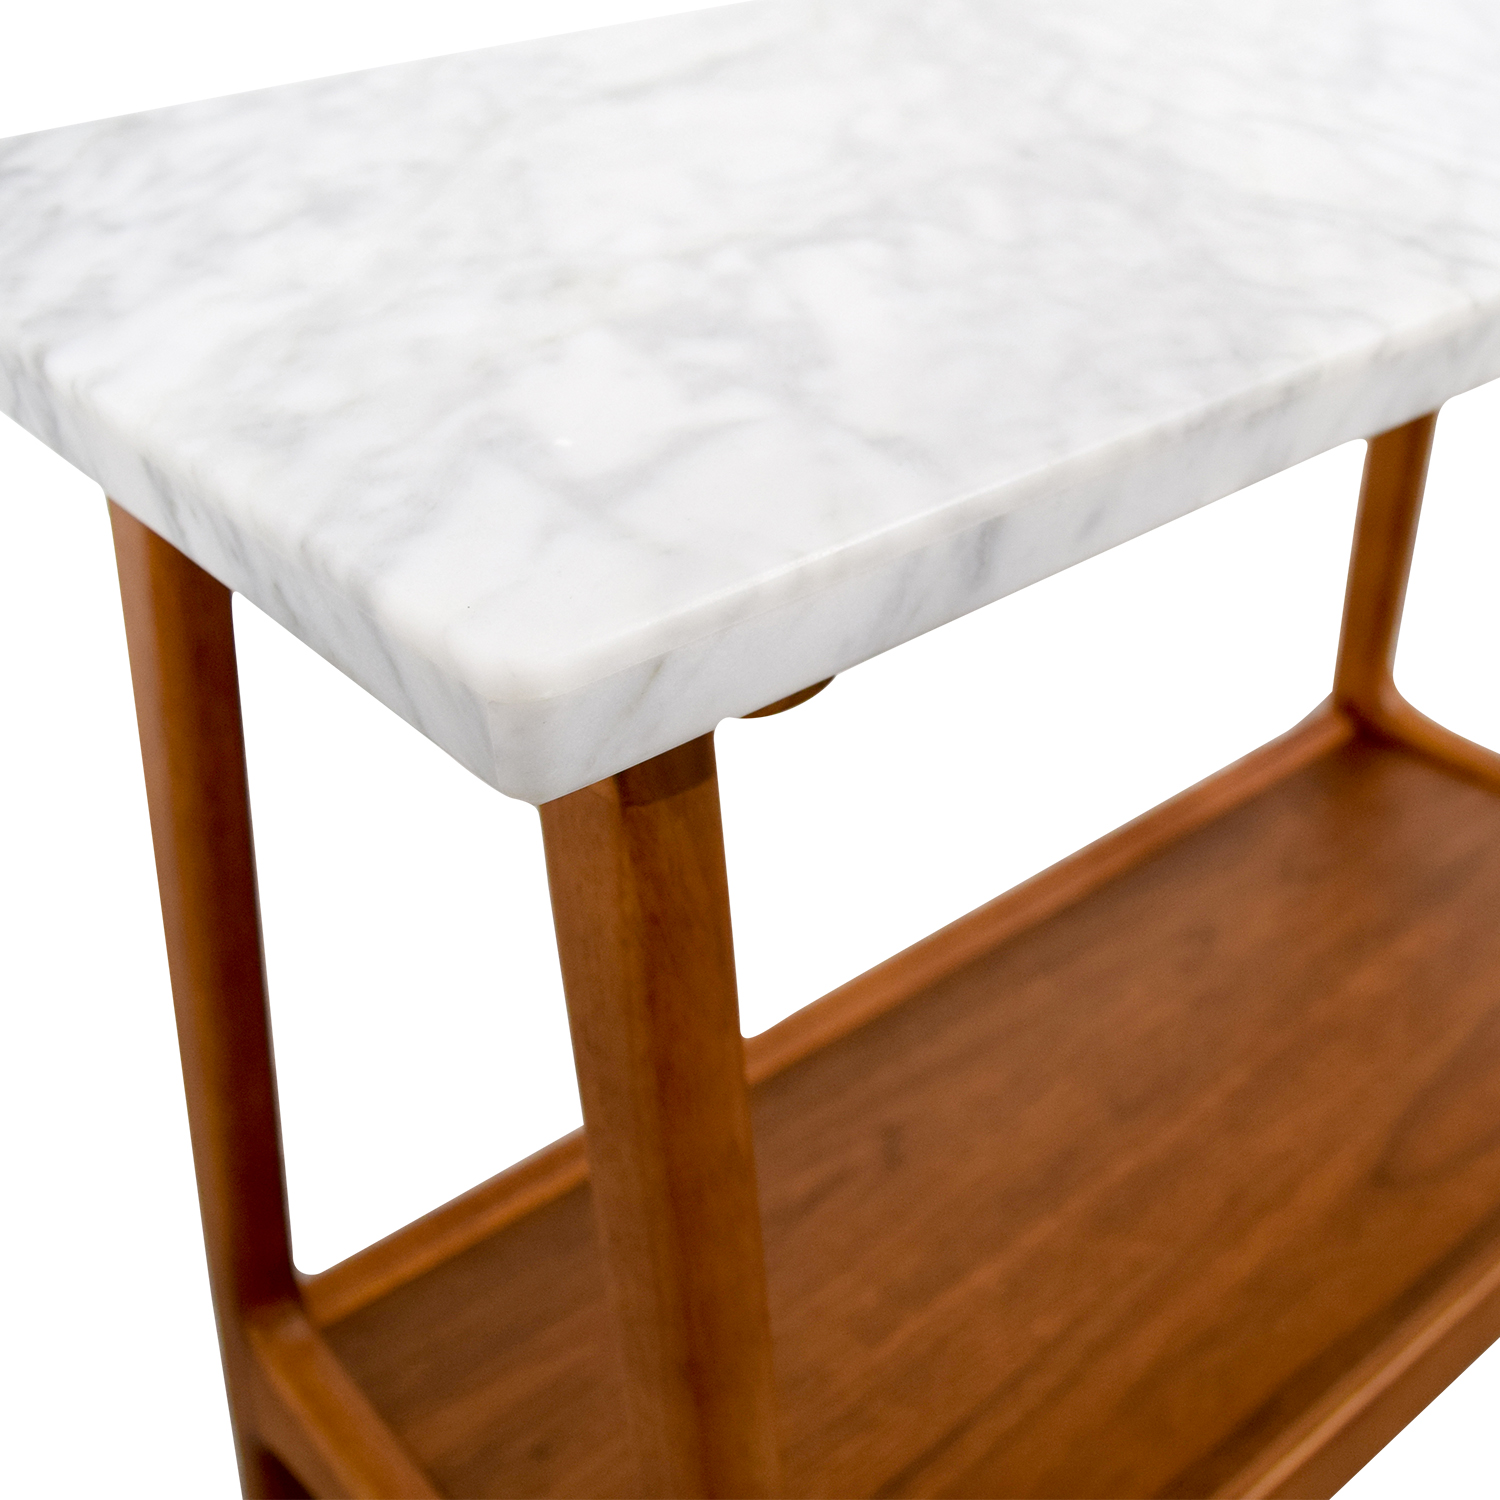 57 off west elm west elm reeve marble walnut side table tables